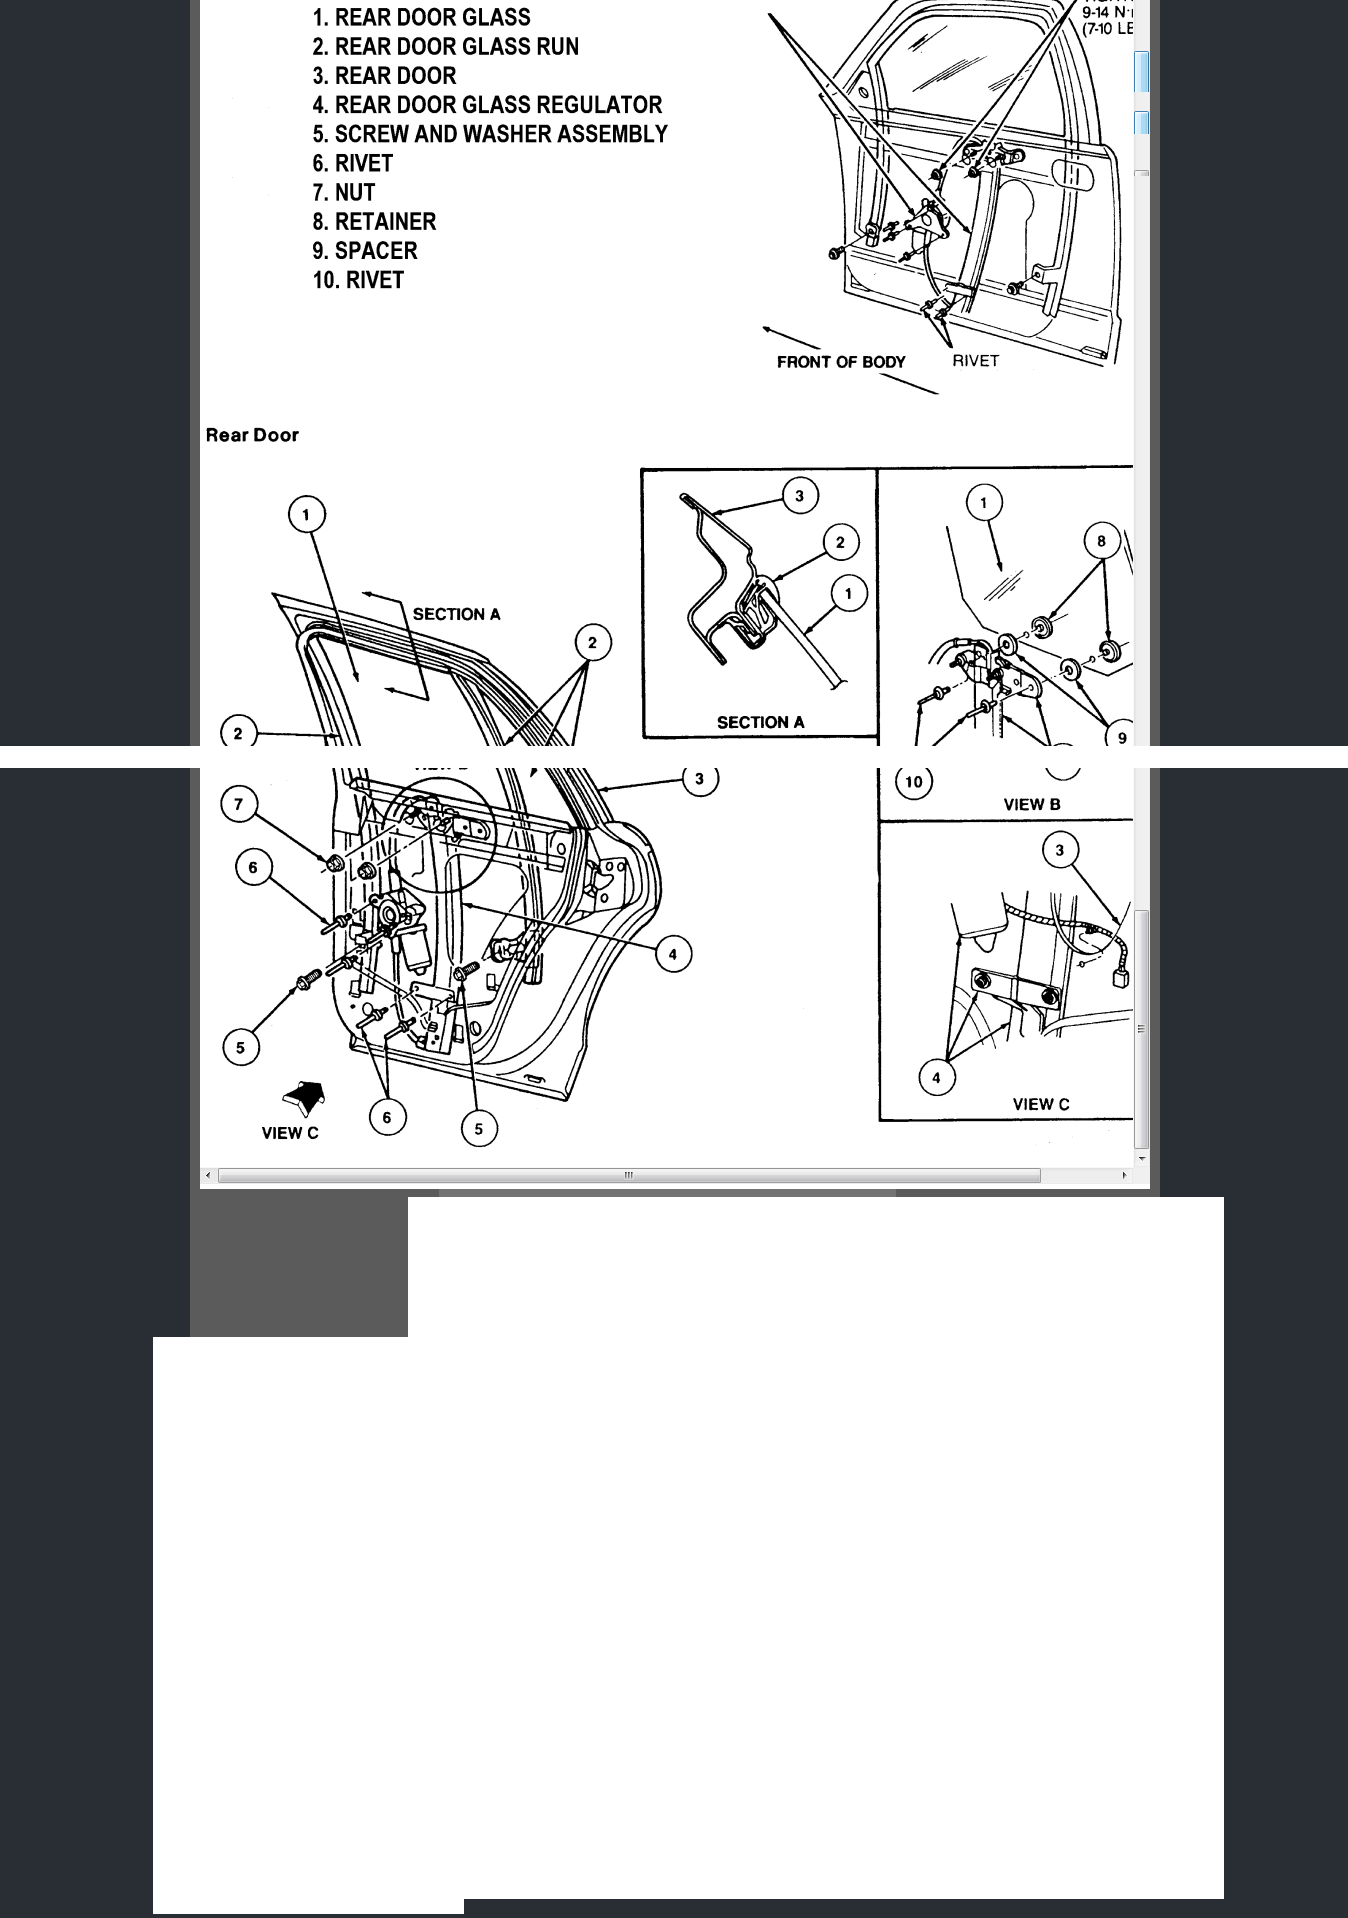 Cadillac Cts Serpentine Belt Routing And Timing Belt Diagrams Of Cadillac Cts Engine Diagram furthermore  further A Ld C Nss in addition D Auto Manual Iacv Hoses One Goes Where Pic Request D B furthermore Pic X. on geo metro transmission diagram